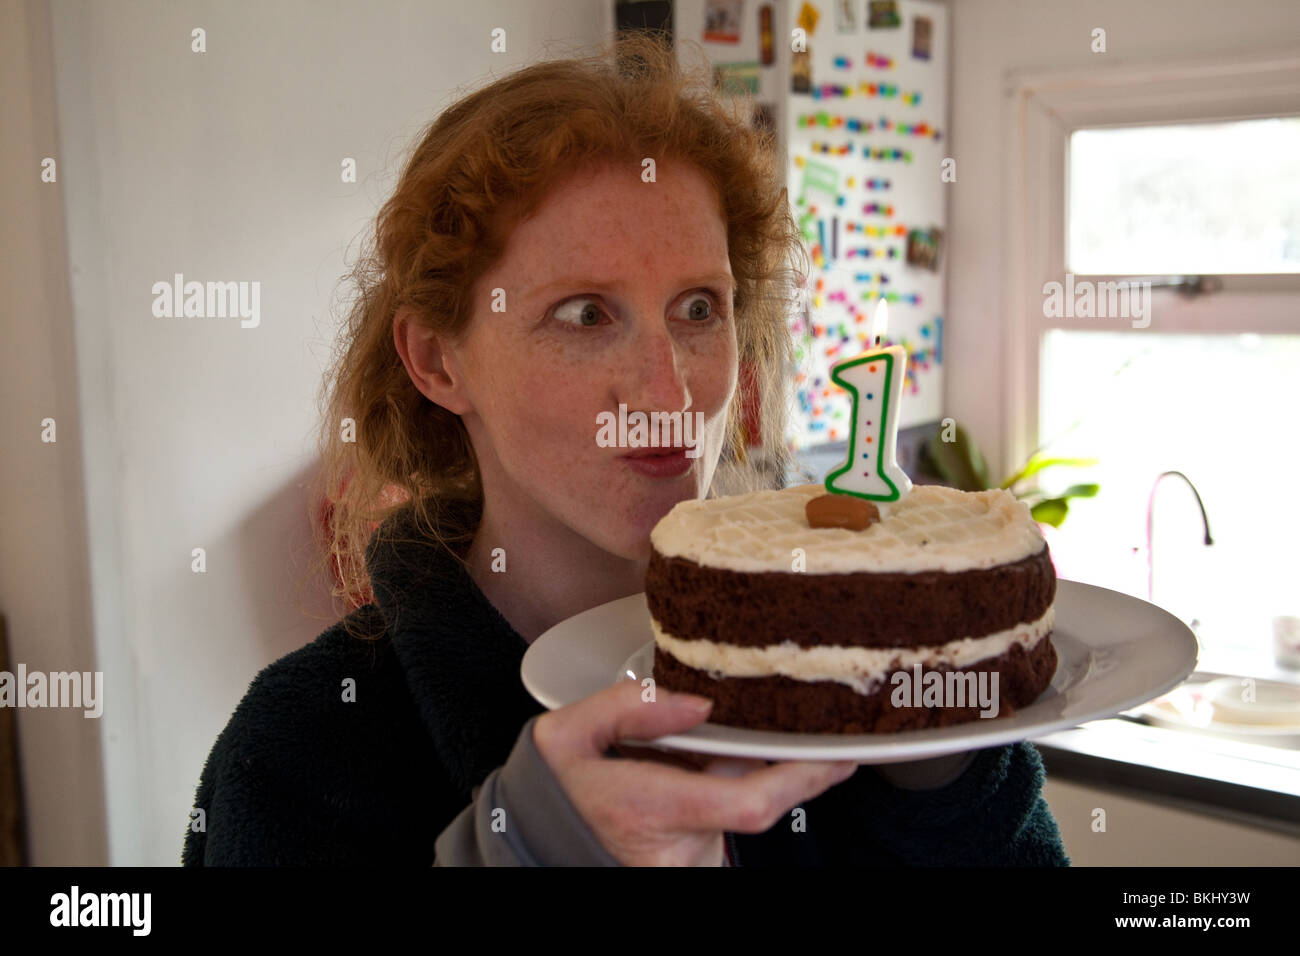 Redheaded woman looking at a chocolate, birthday cake with a number 1 candle. - Stock Image